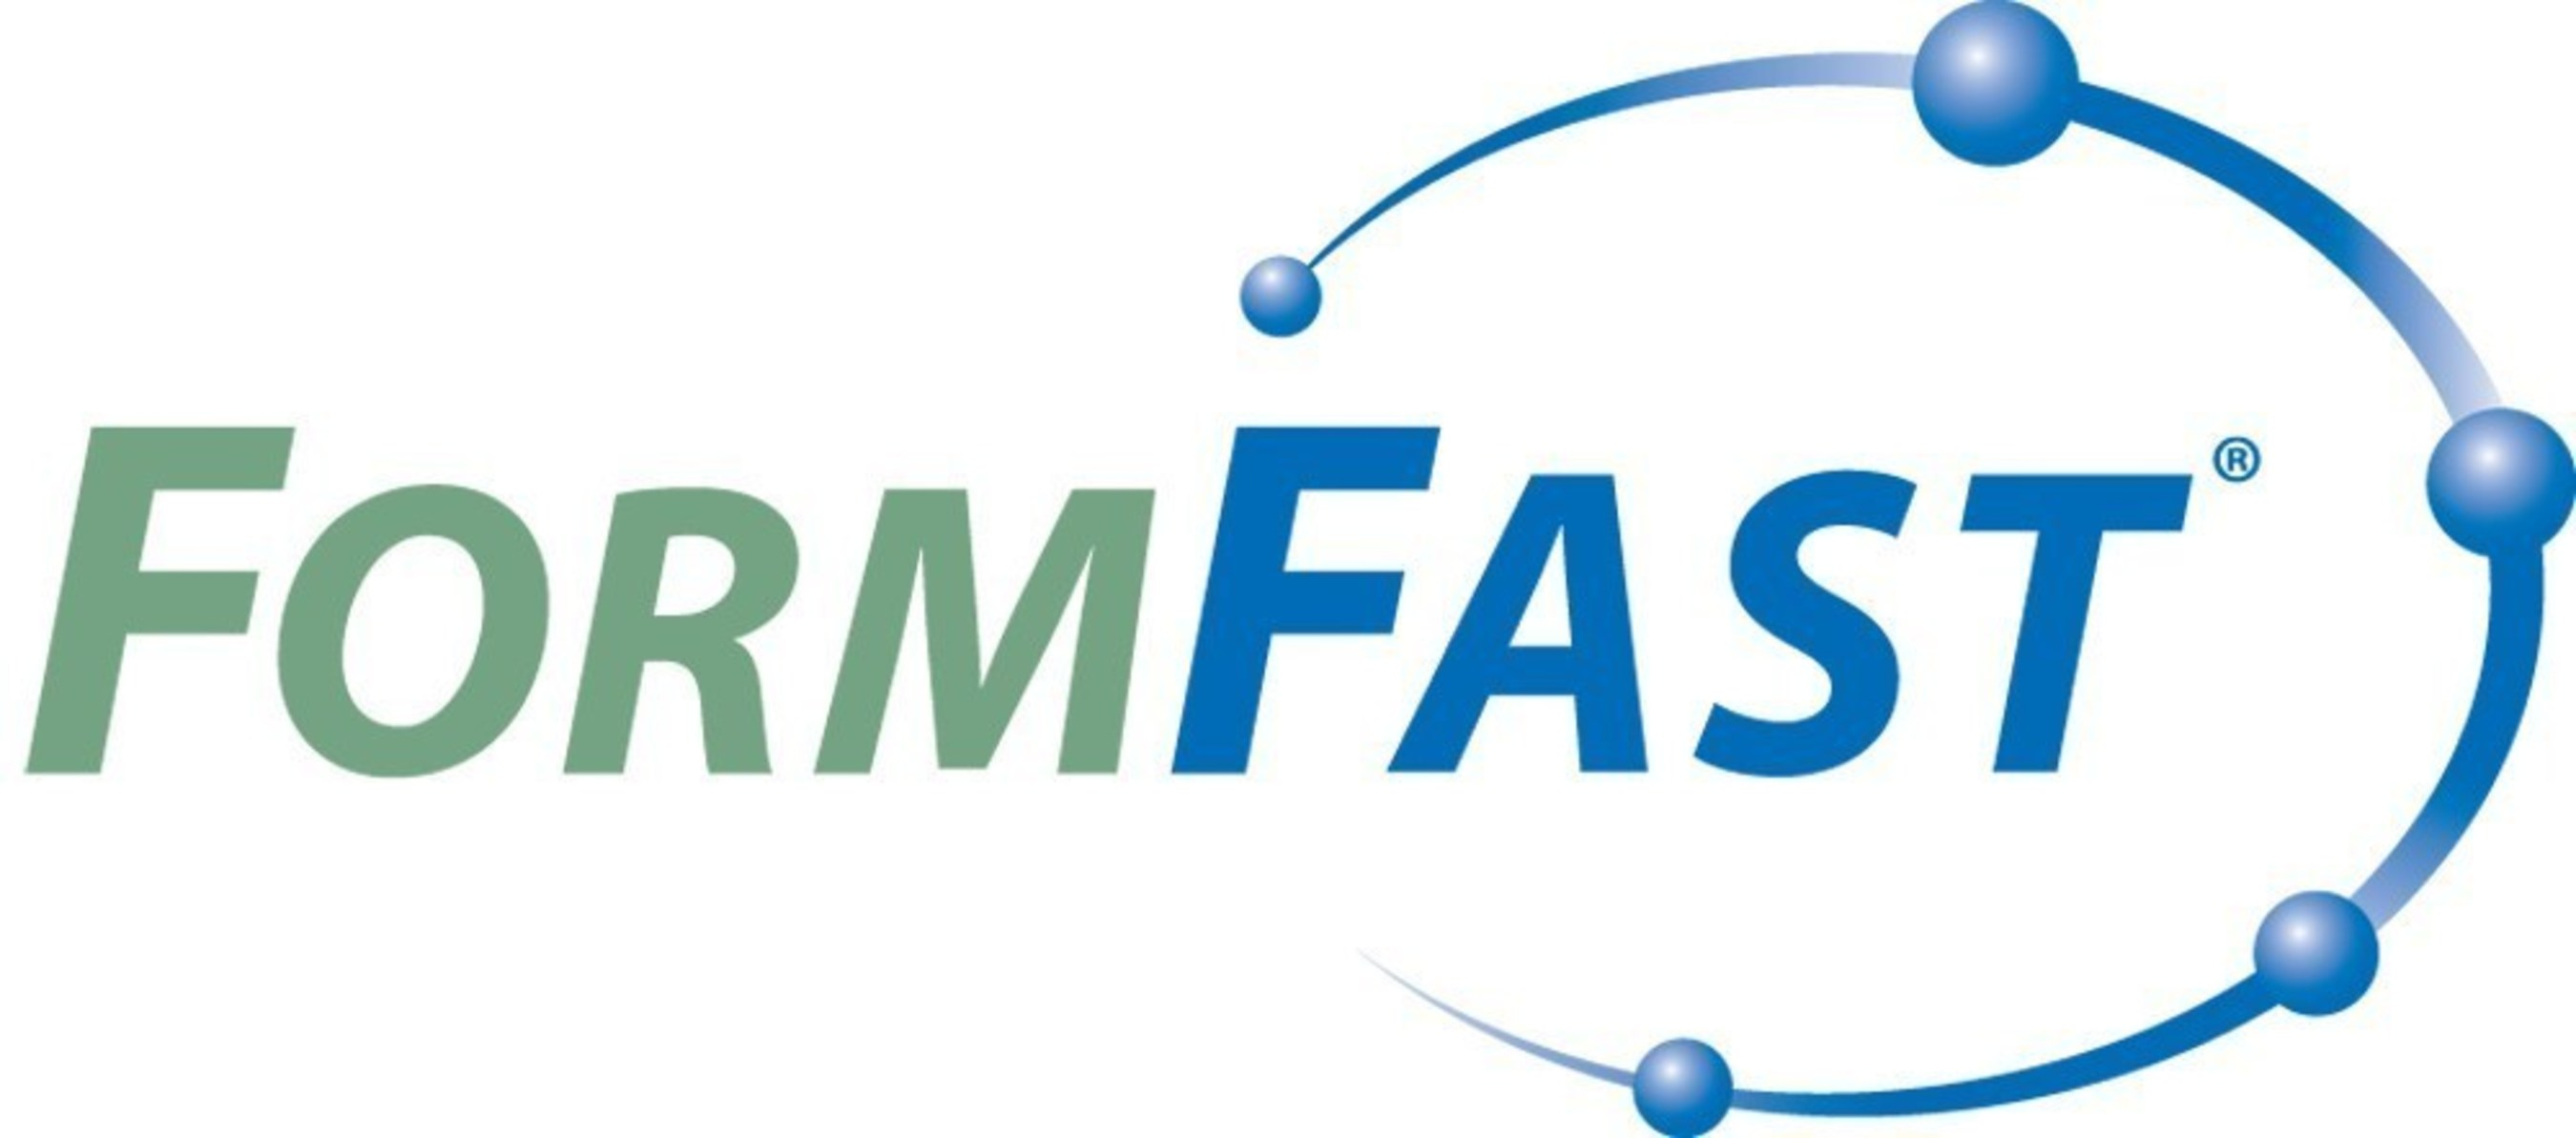 FormFast Showcases Advanced Technology for Higher Health Care Performance at HIMSS 2015